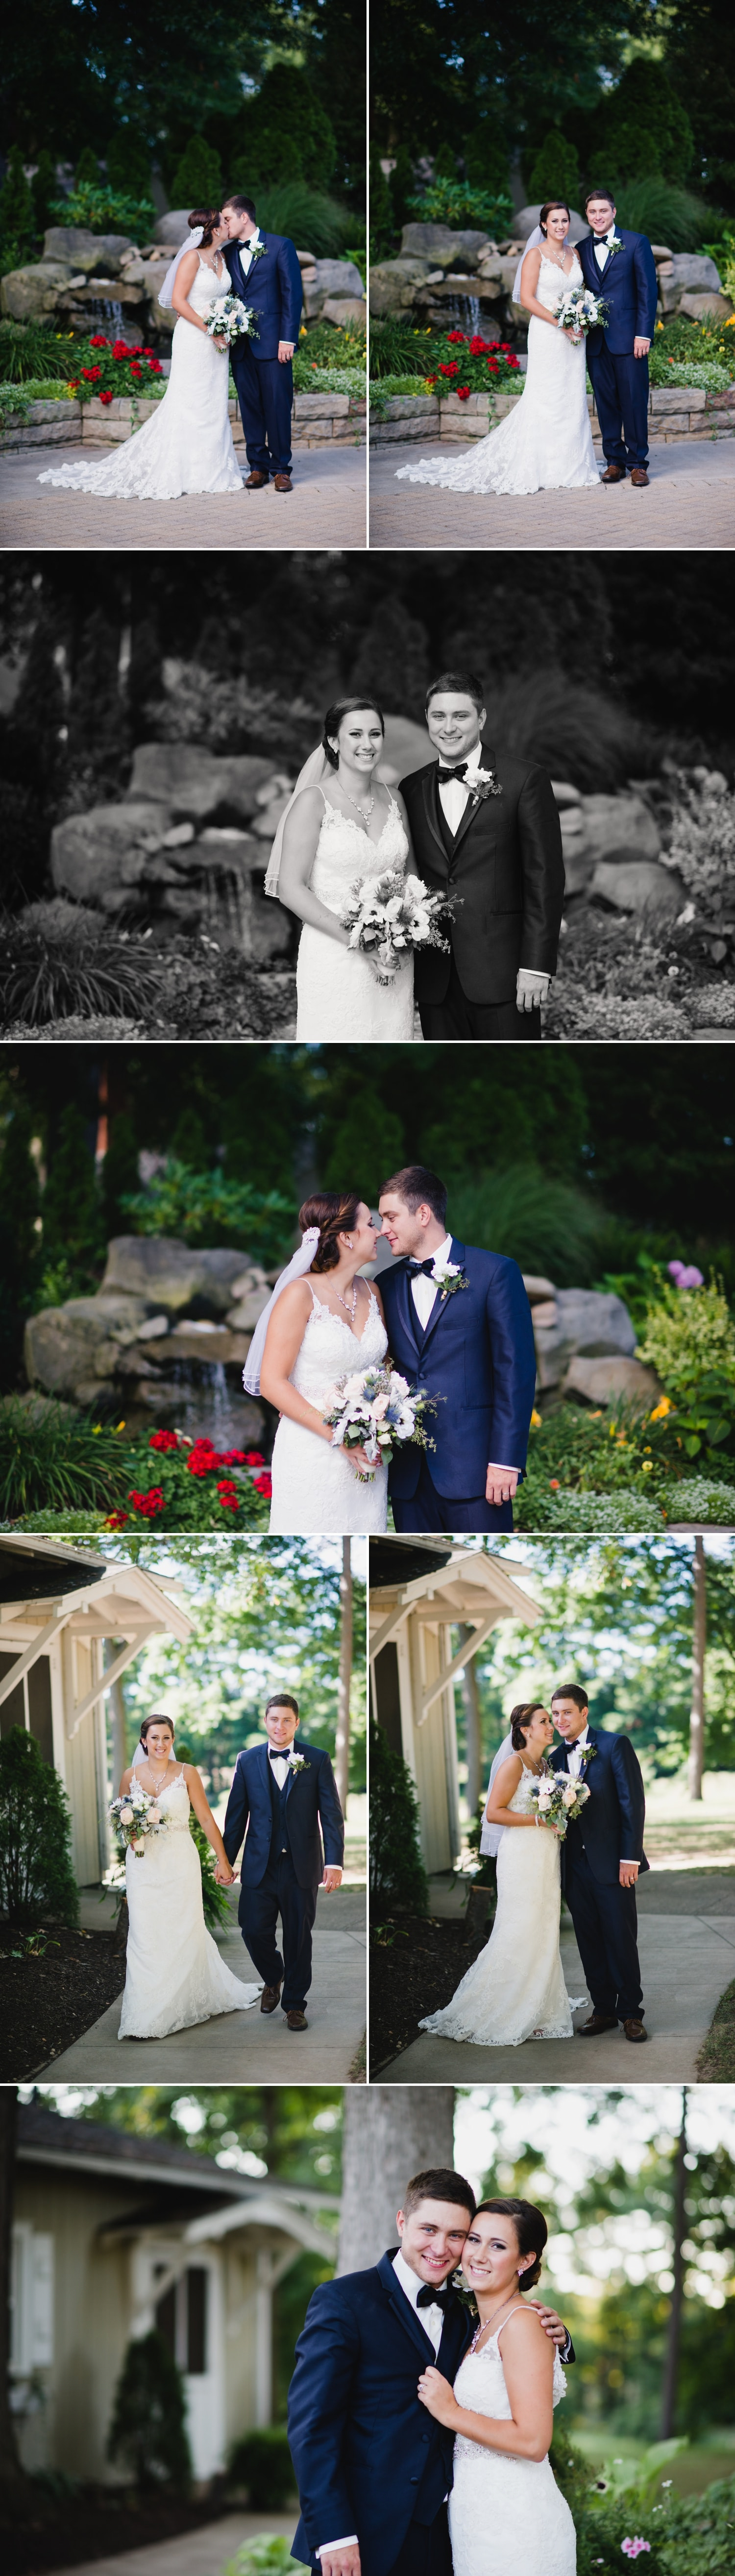 Heckman Wedding Blog 11.jpg